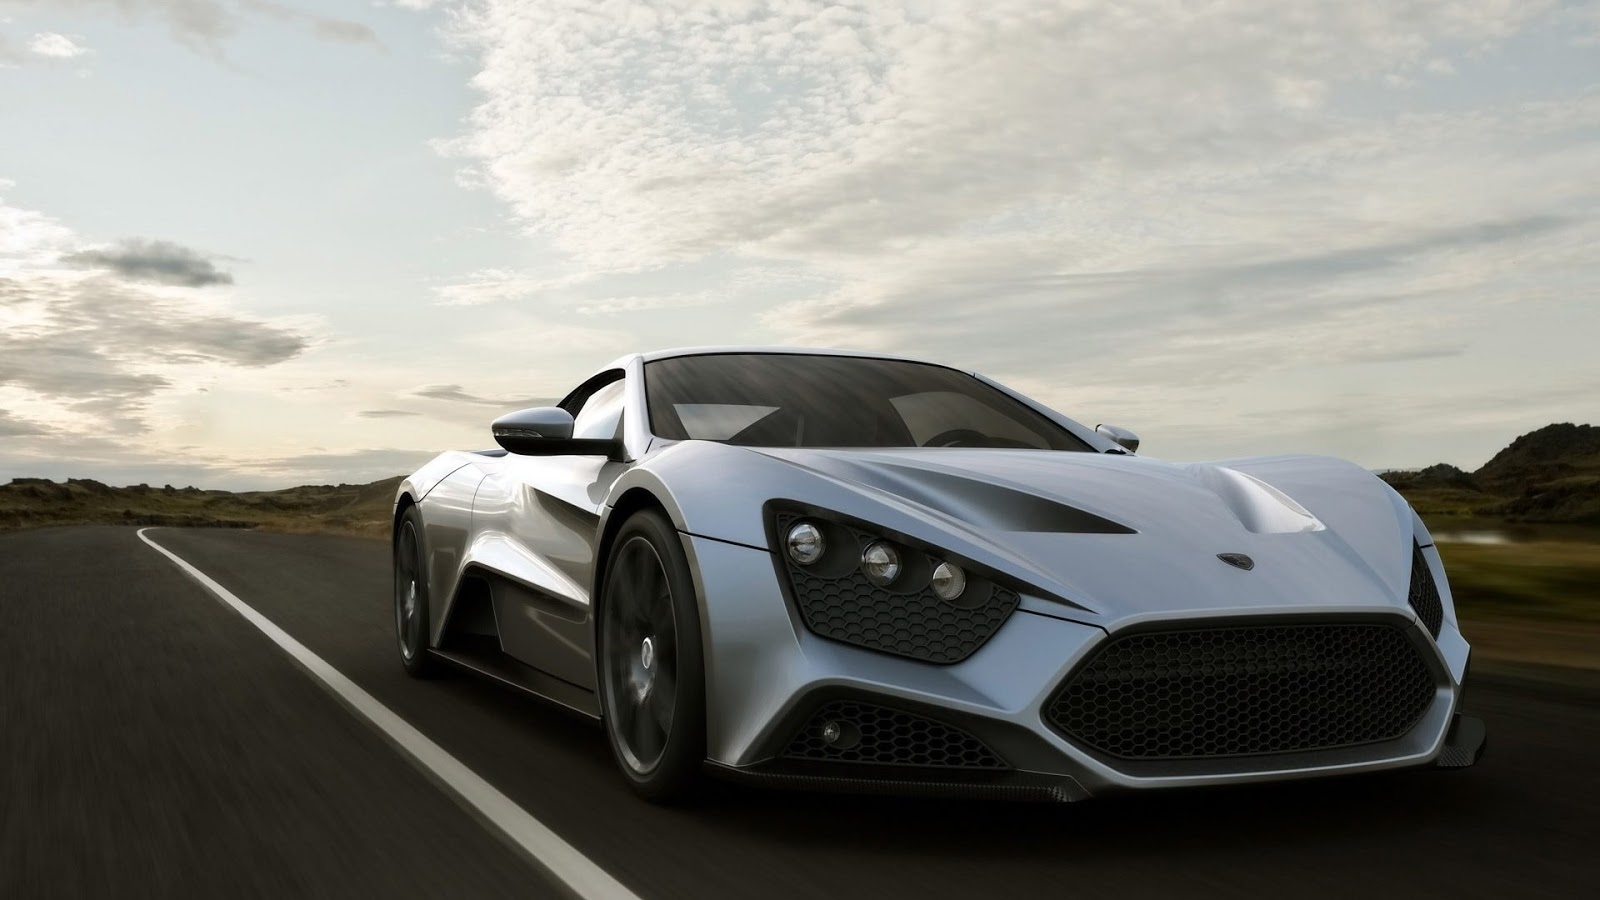 Super Cars 2013 HD Wallpapers HD Wallpapers 360 1600x900